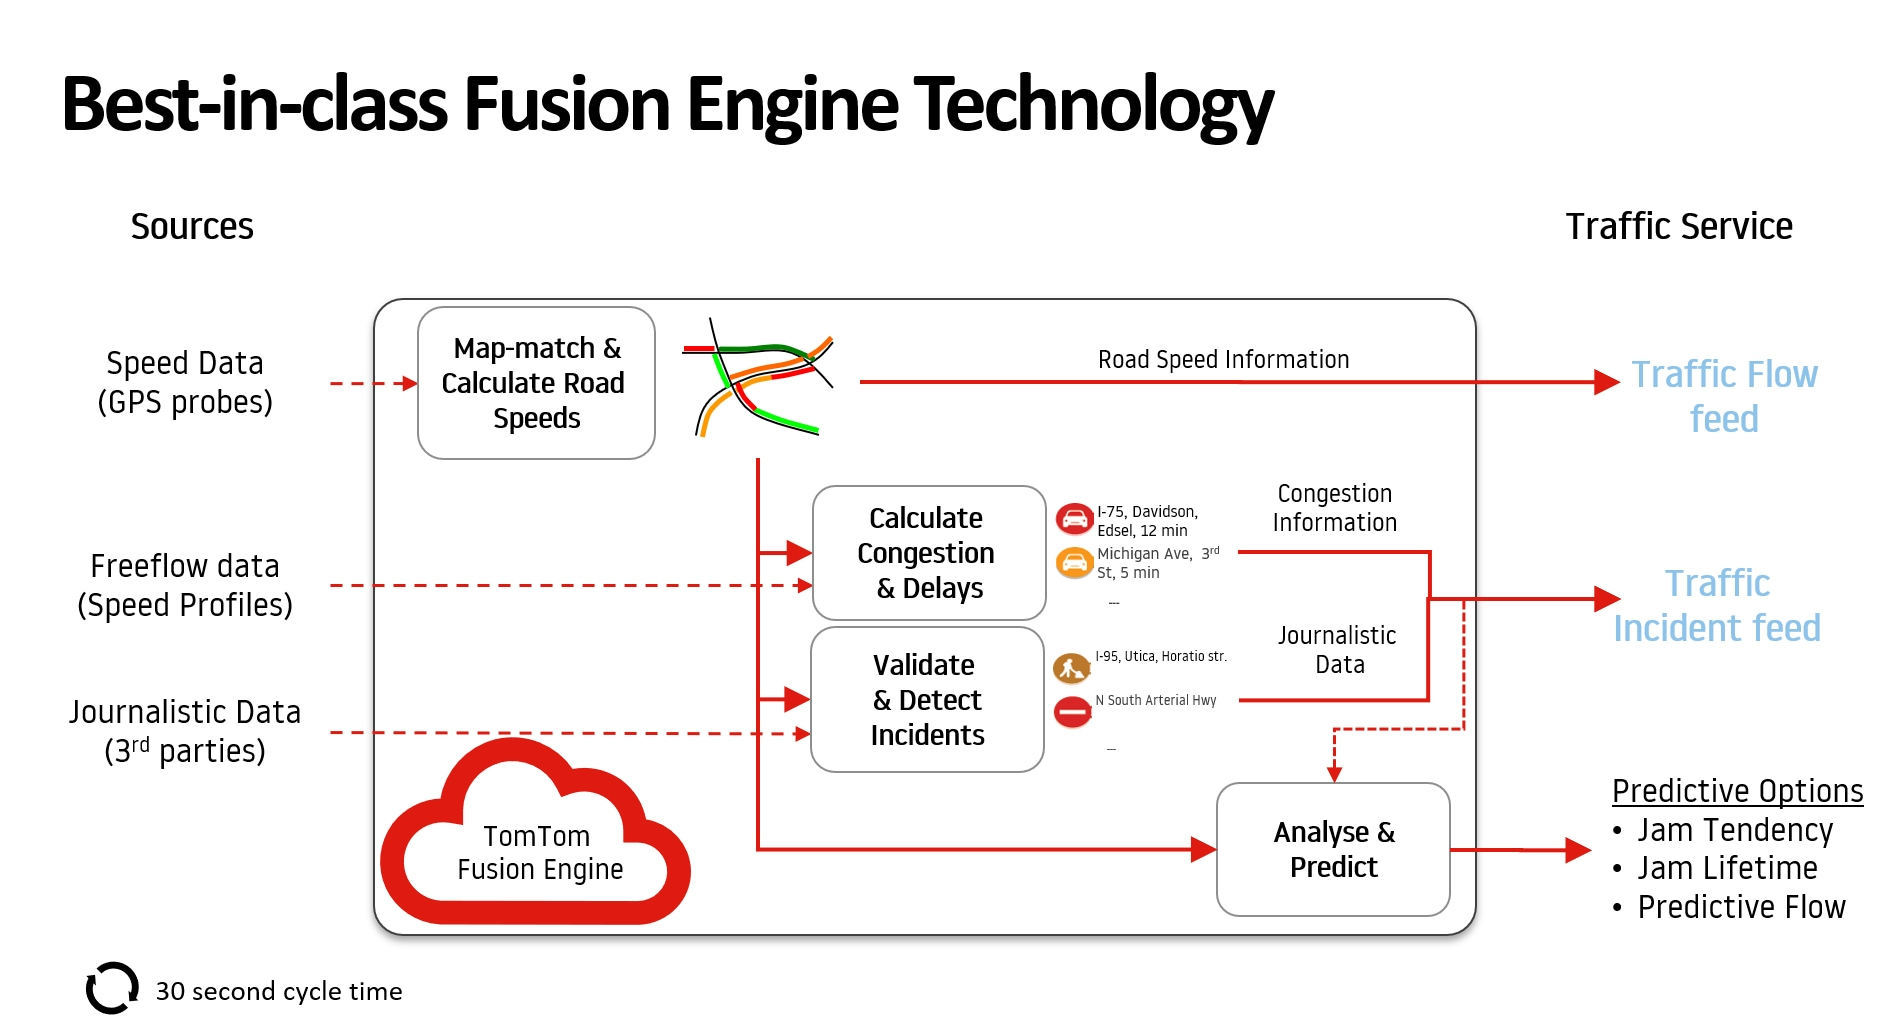 Best-in-class fusion engine technology